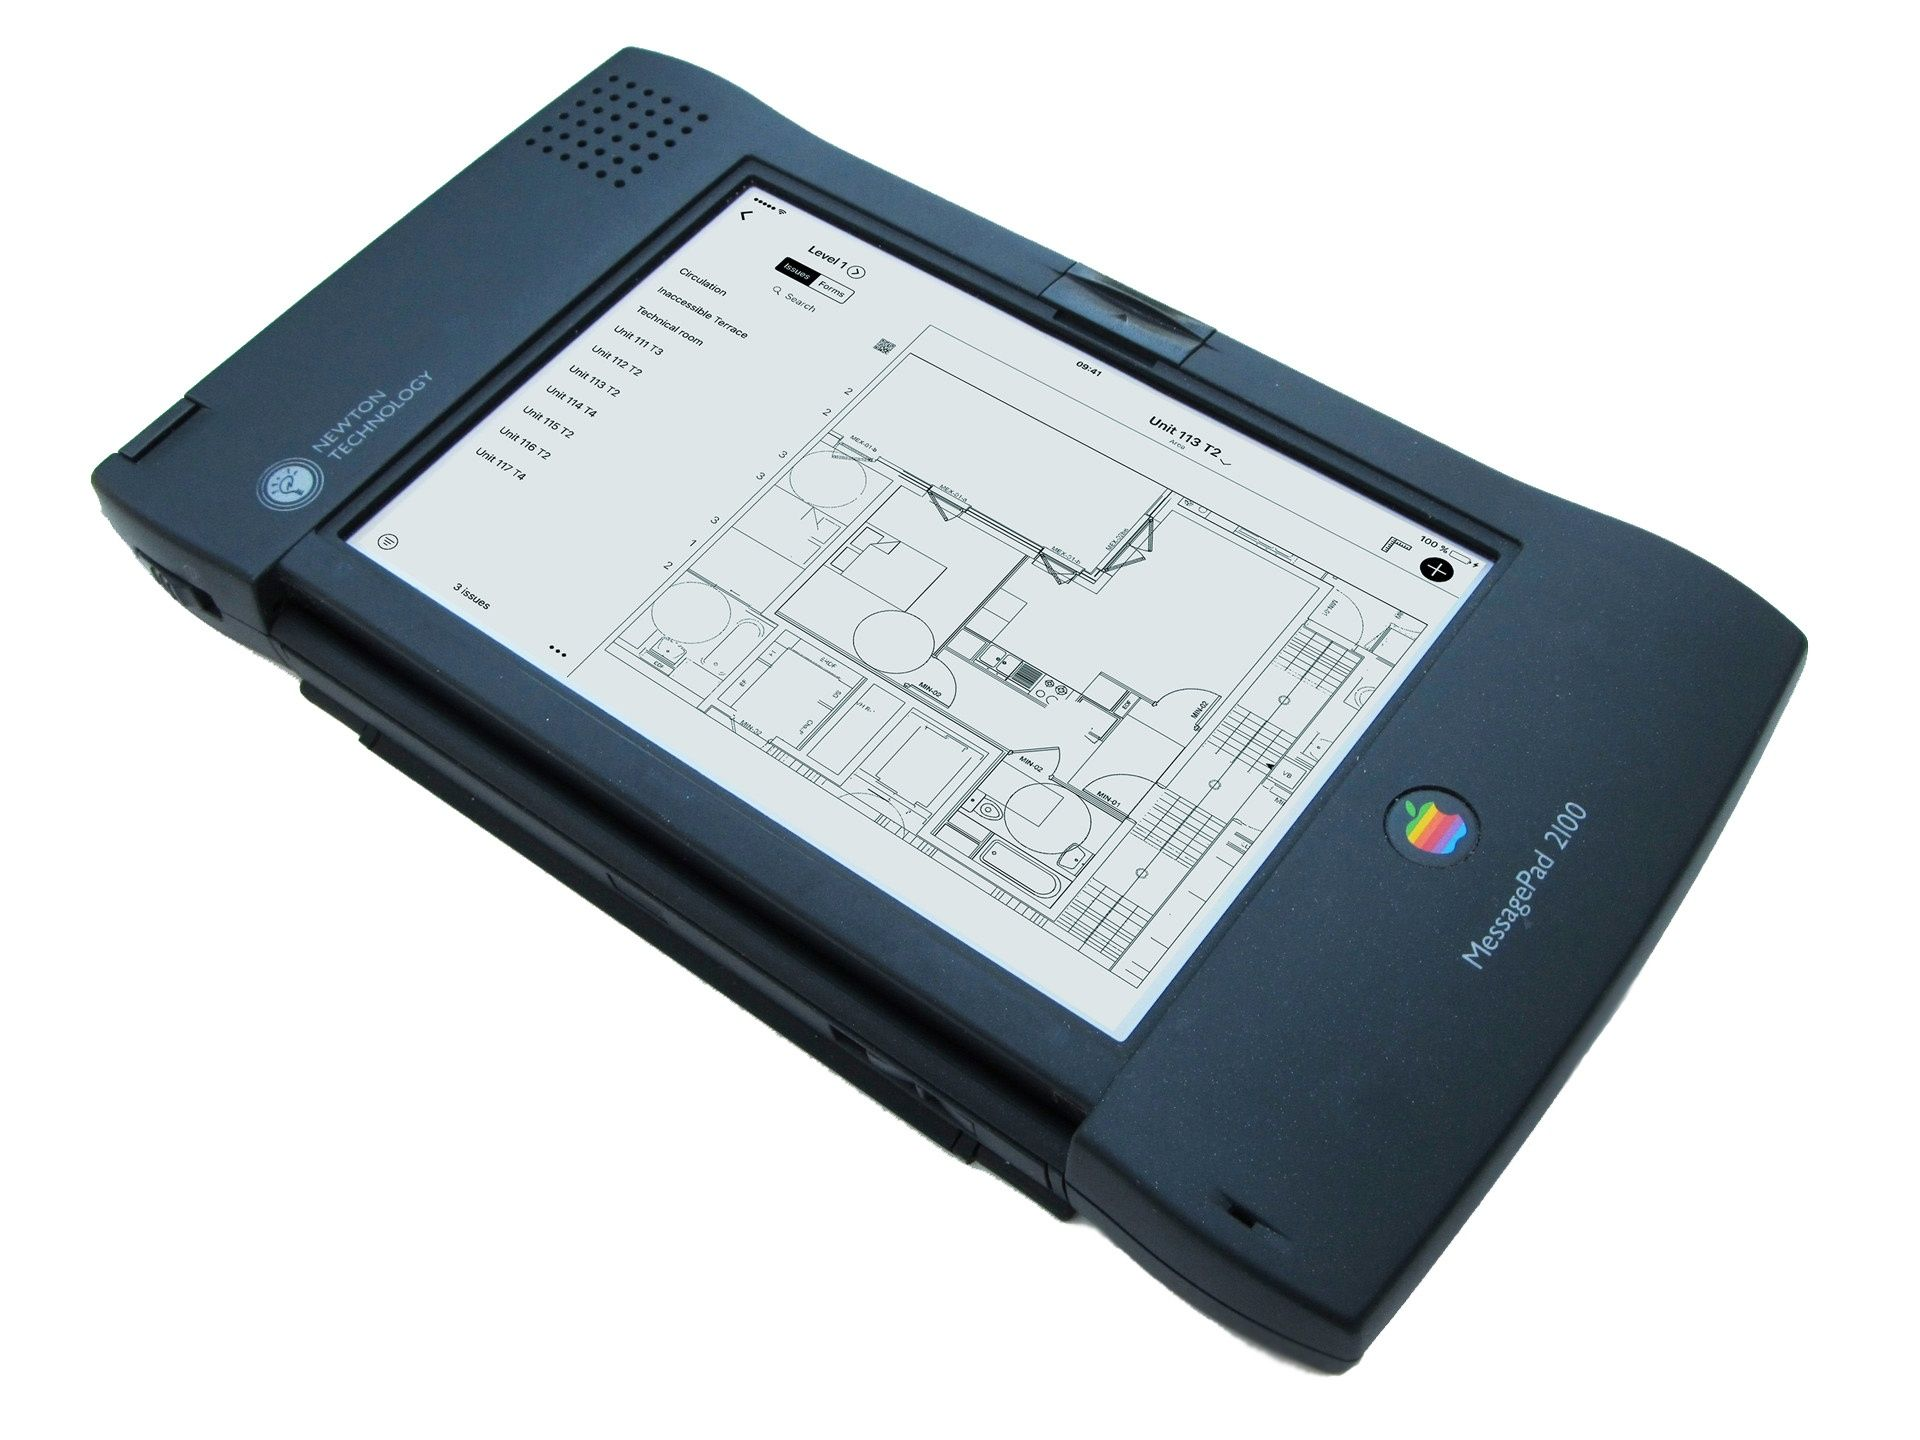 apple-newton-finalcad.jpg